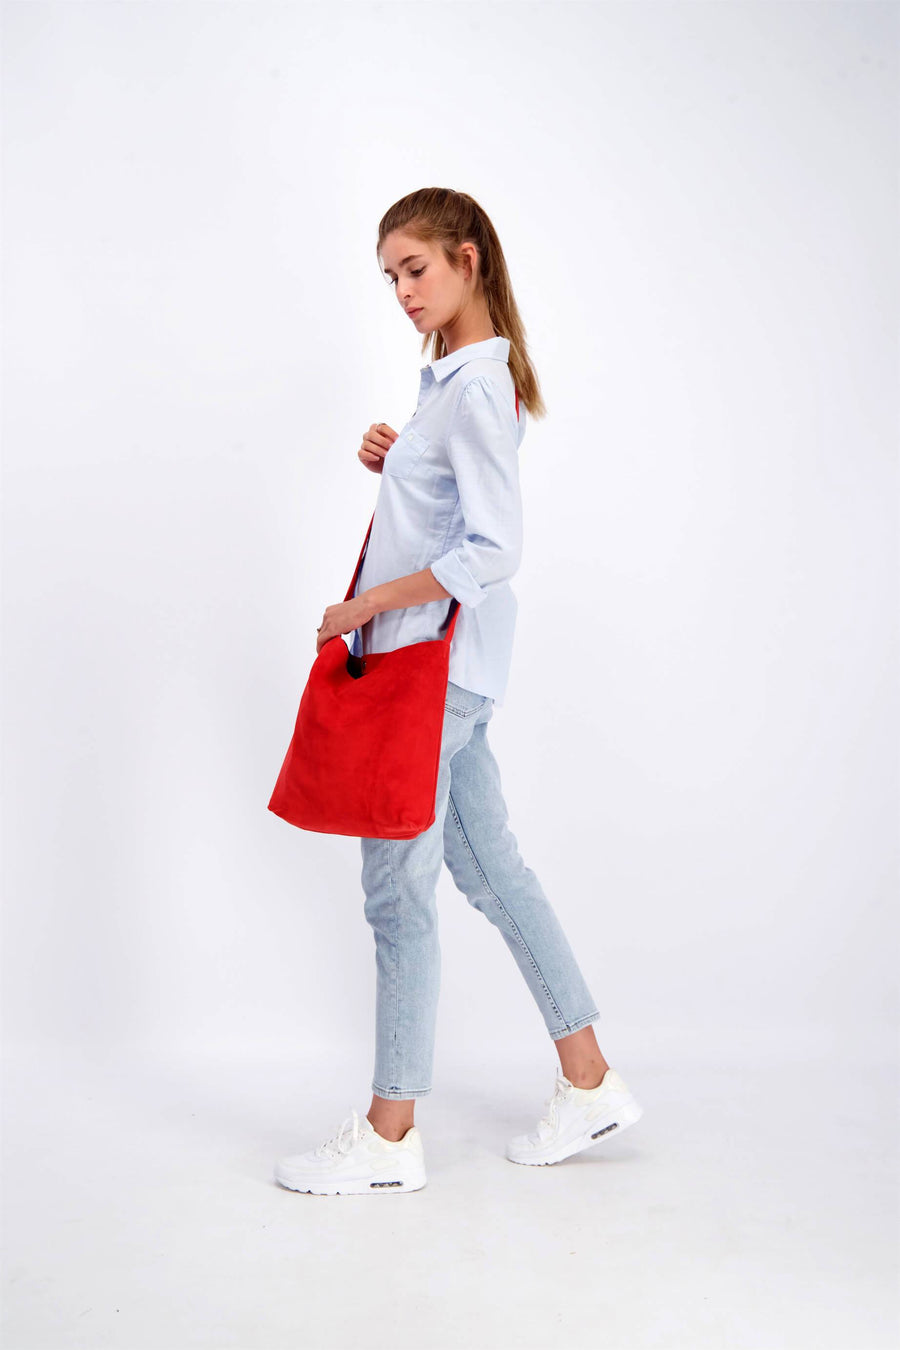 how to wear a crossbody bag, bags and handbags, what is crossbody bag, handbag,  ladies crossover body bags, handbag cross, cross body large handbags, medium sized crossbody handbags,  crossbody tote bag, cross over bags women, Crossbody leather bag, Leather Suede Bag, Crossbody Bag, Evening Bag , mayko bags, Leather Bag, Suede Leather Bag, Everyday Carry Leather Bag, Handmade Soft Leather Bag, Women Bag Tote, Long Tote Bag